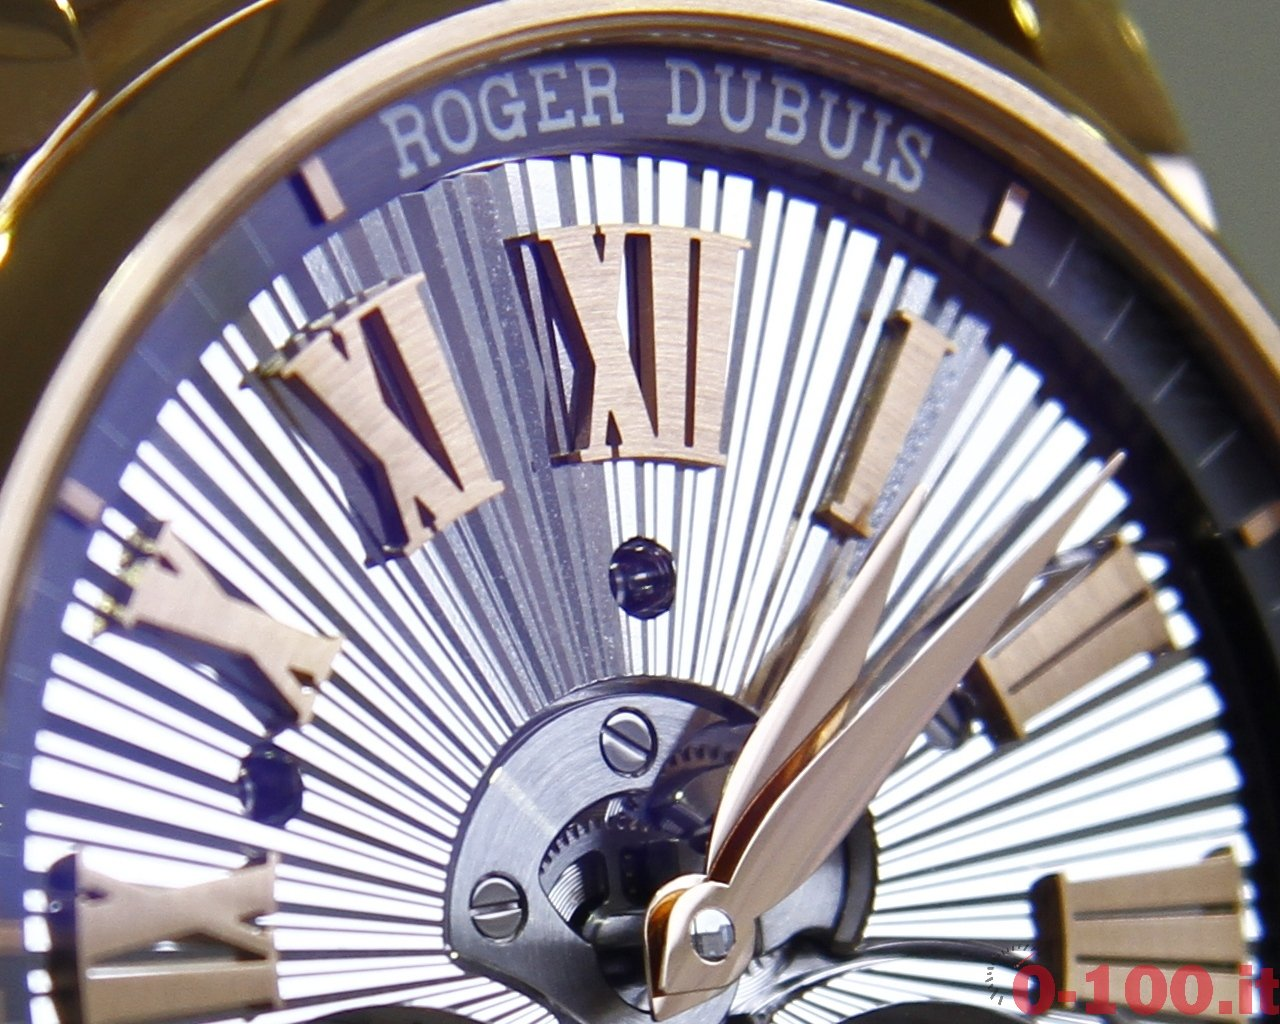 roger-dubuis-hommage-double-flying-tourbillon-0-100_26